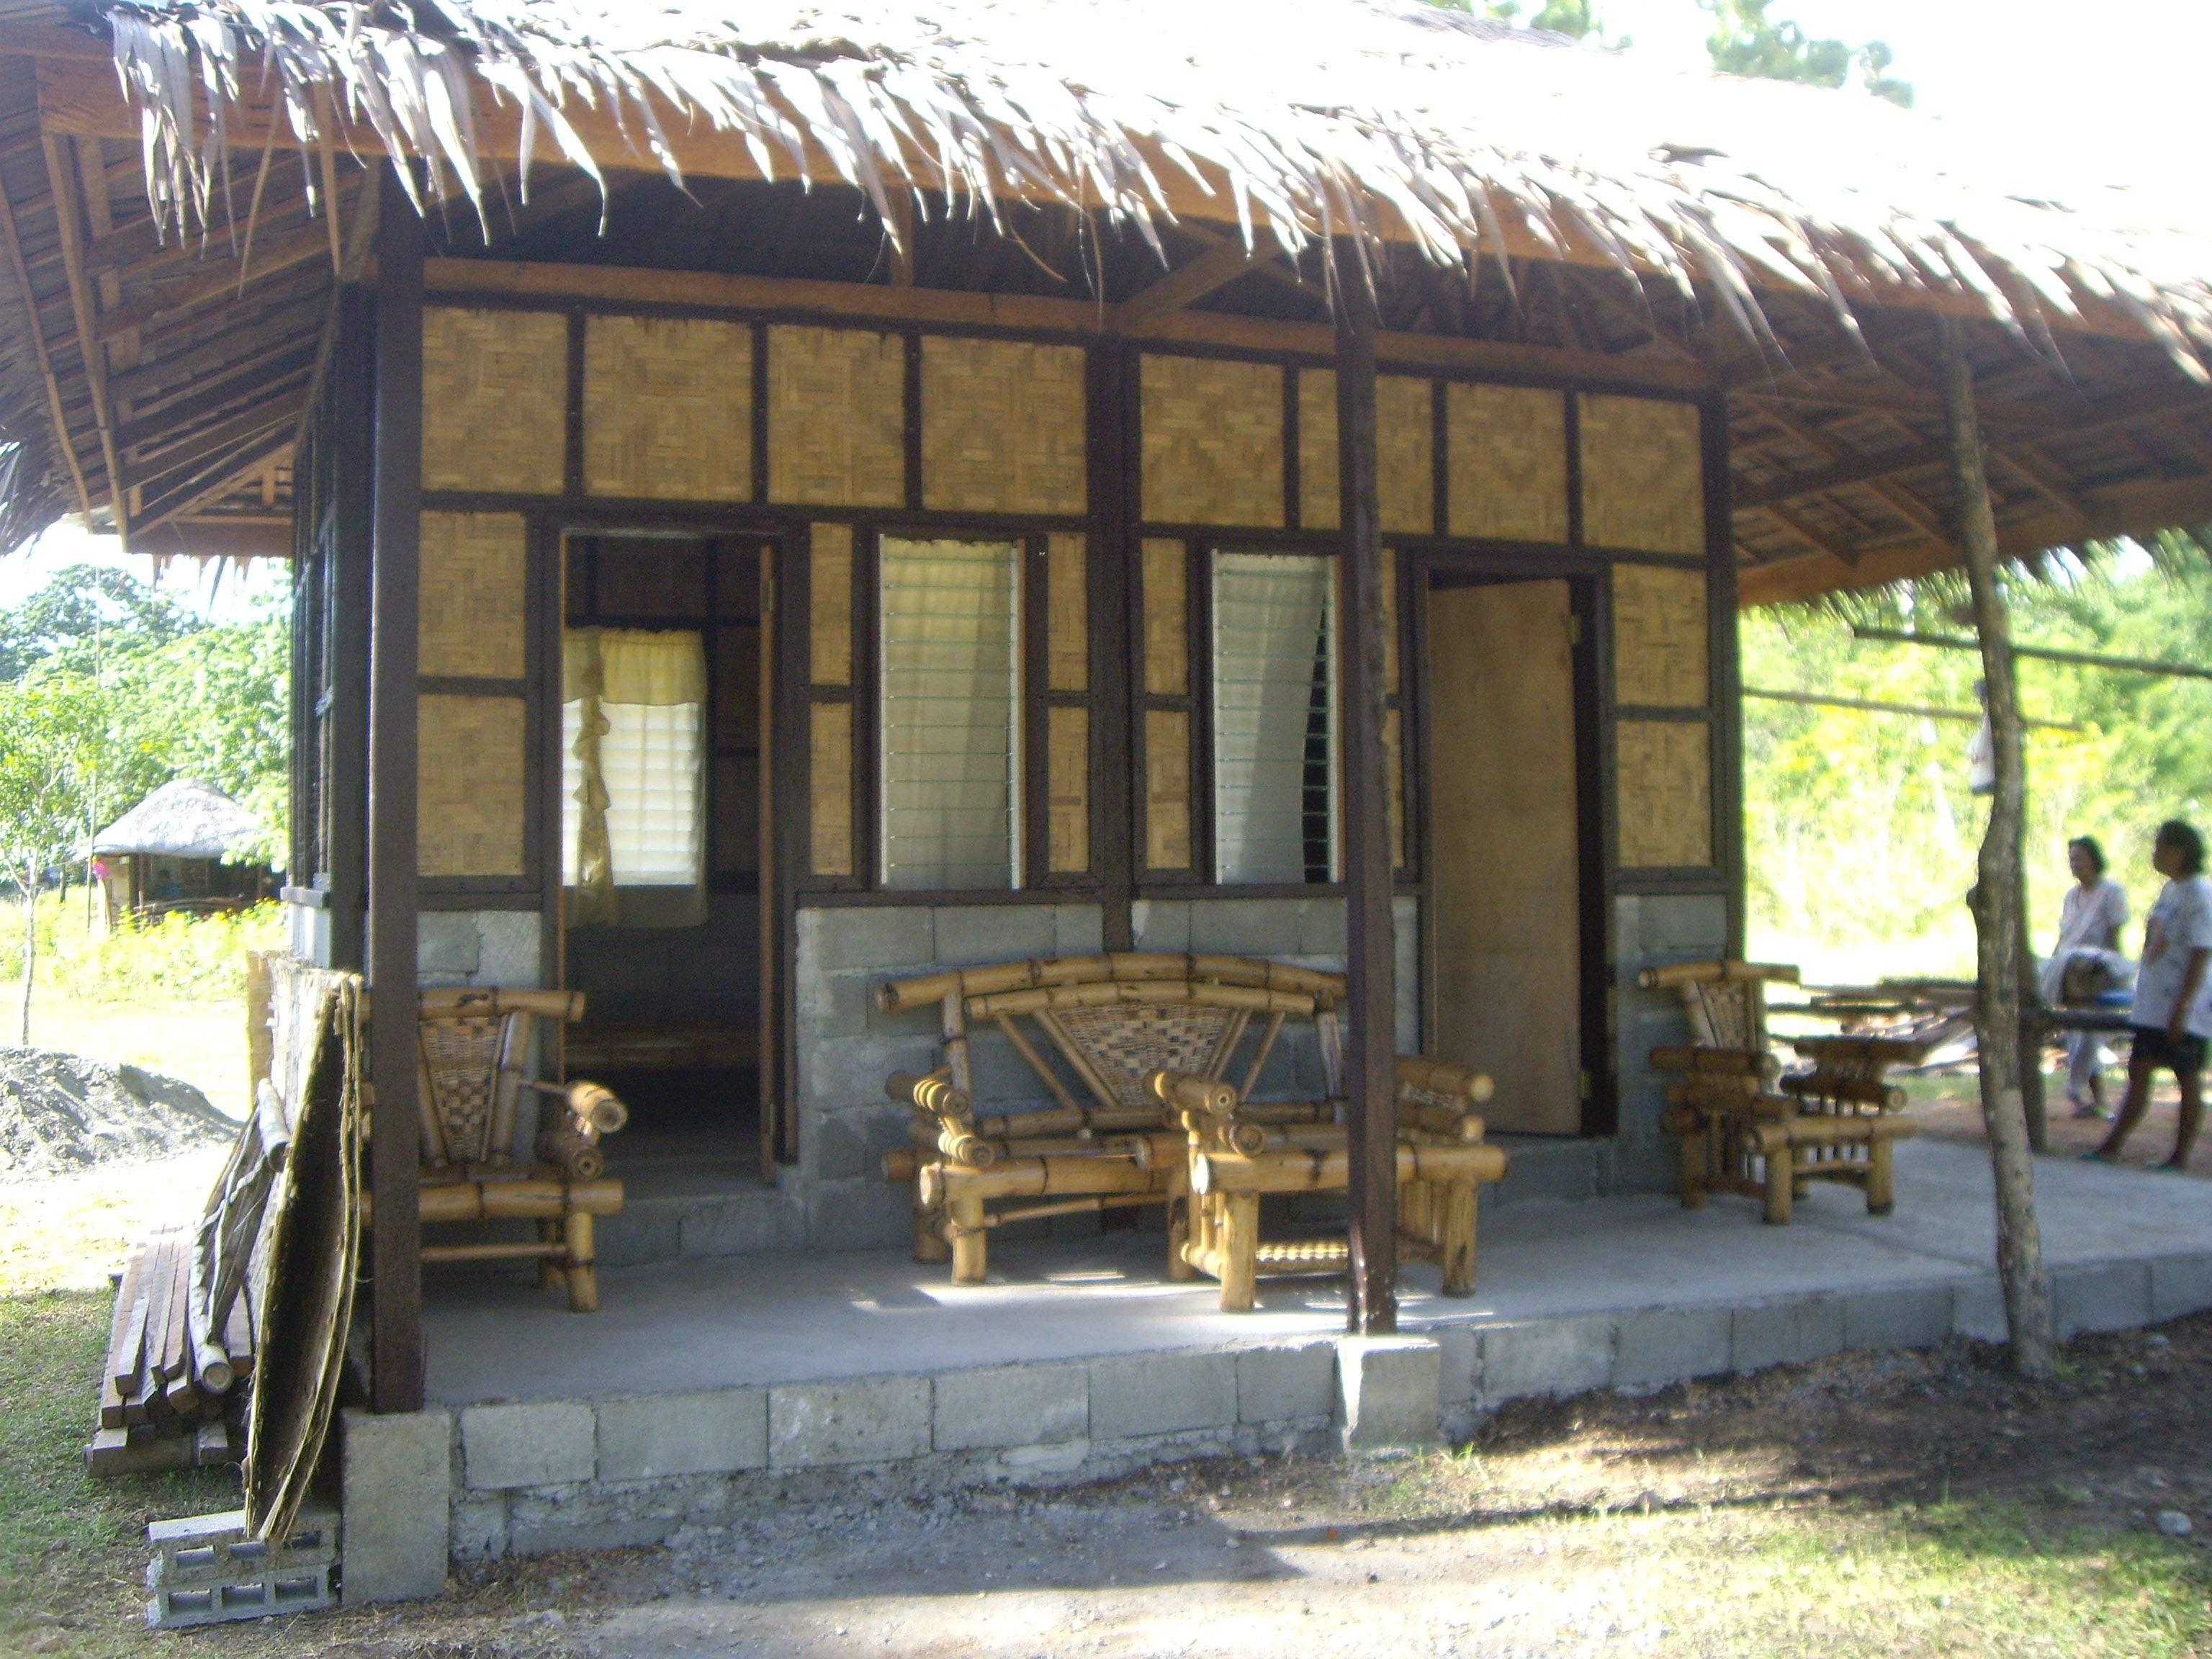 The latest bahay kubo nearing completion